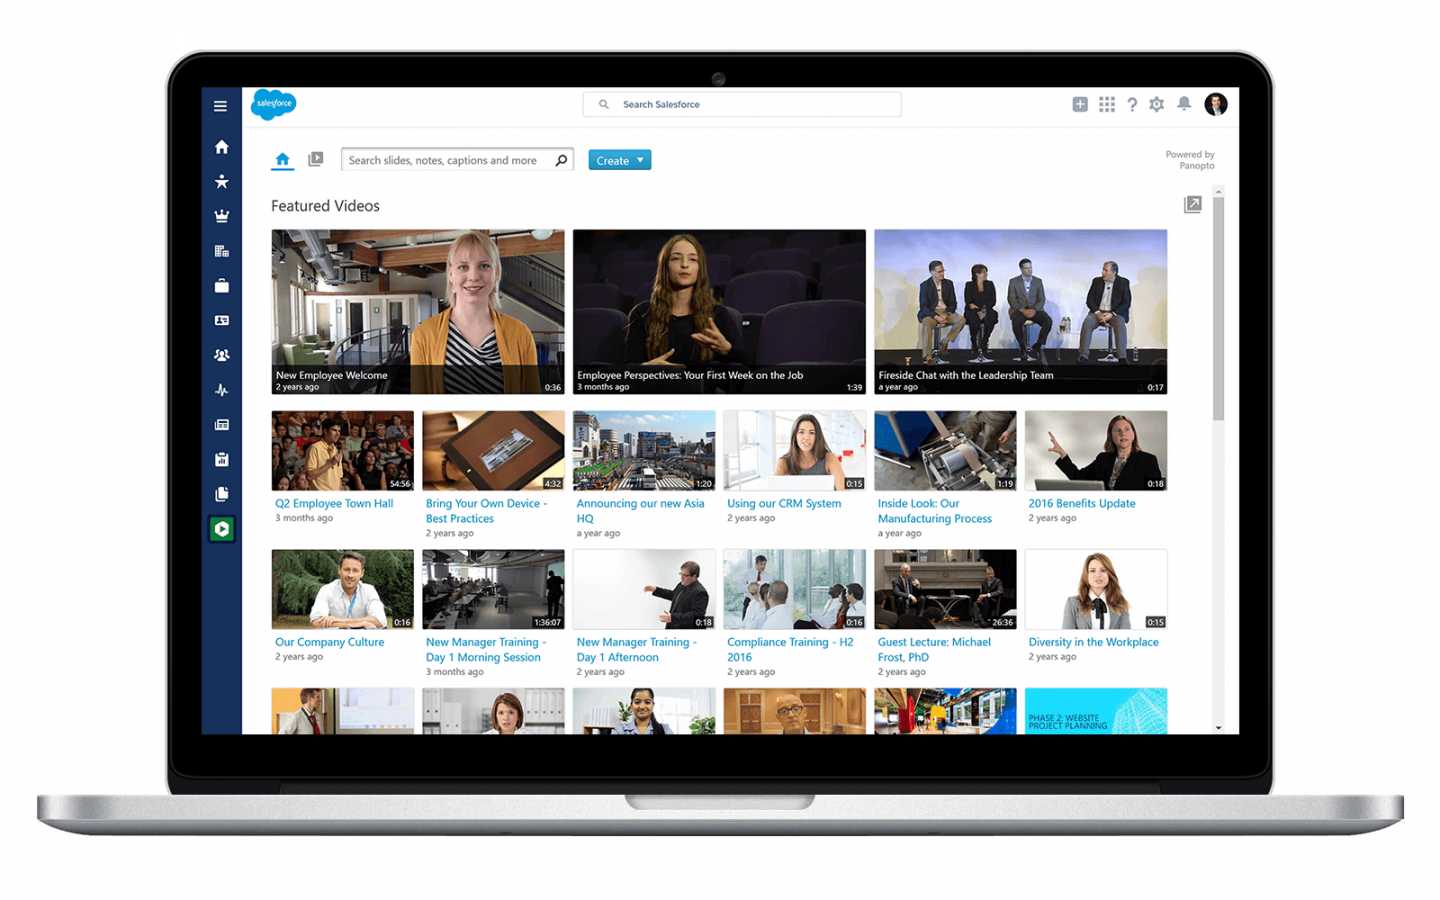 Share your video library in Salesforce with Panopto